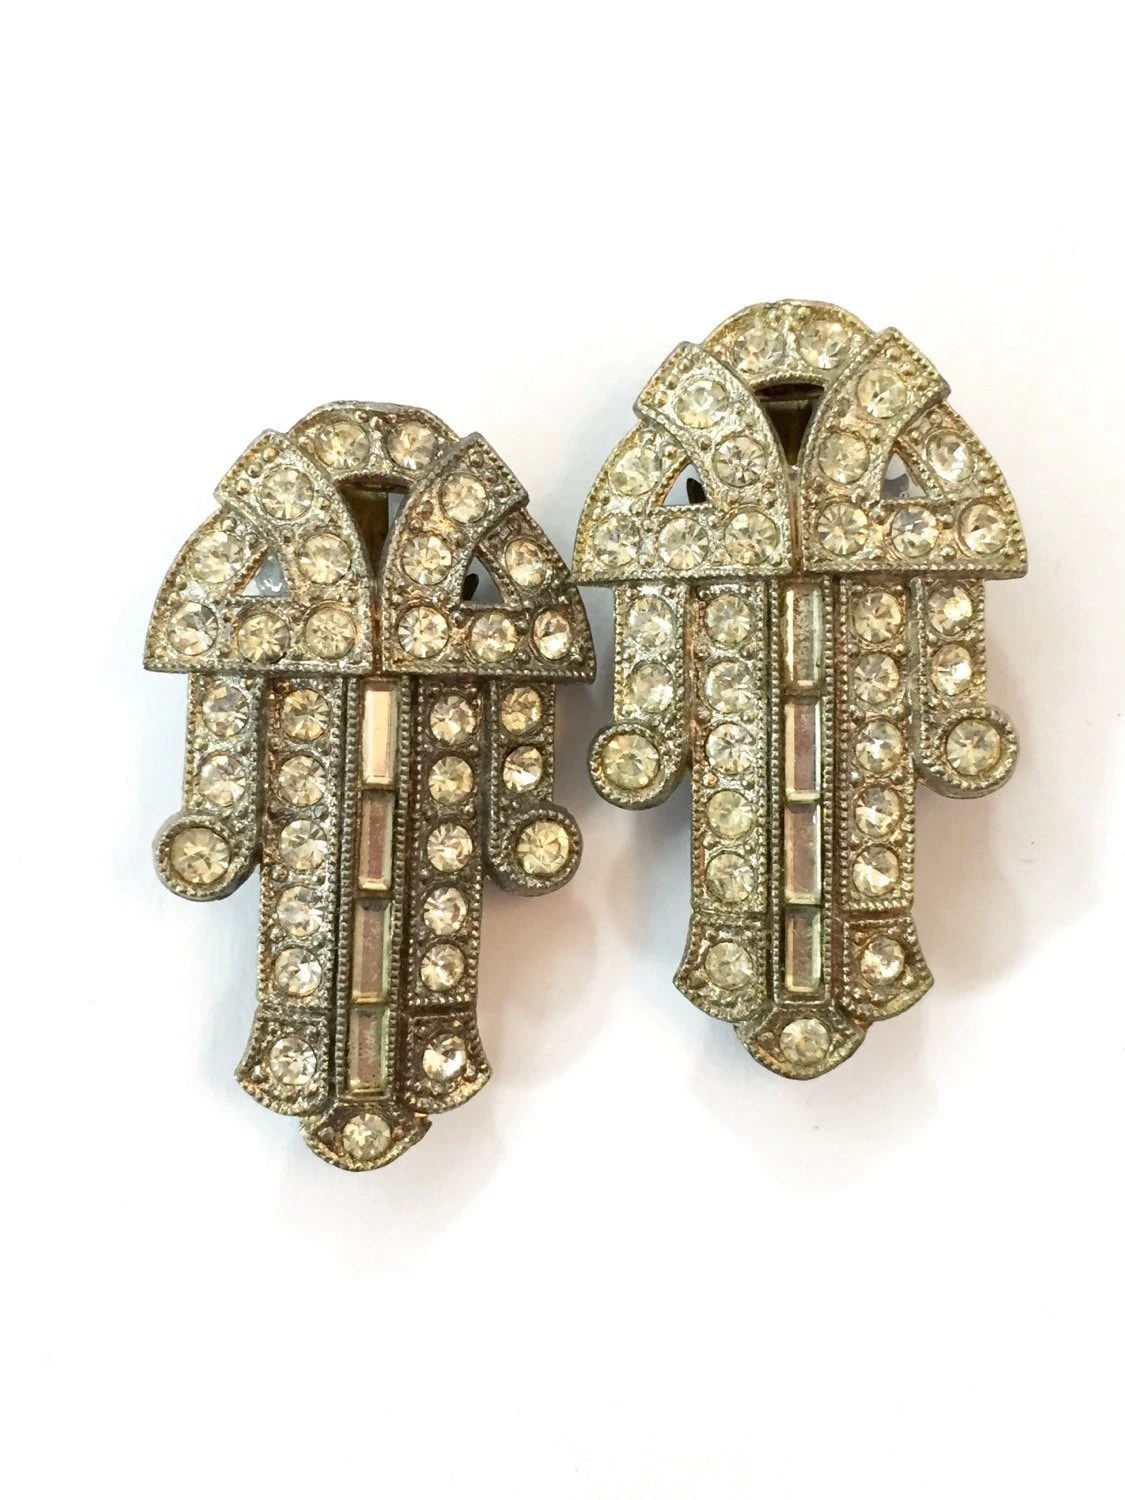 Art Deco Clips Vintage Rhinestone Dress Shoe Clips Diamant